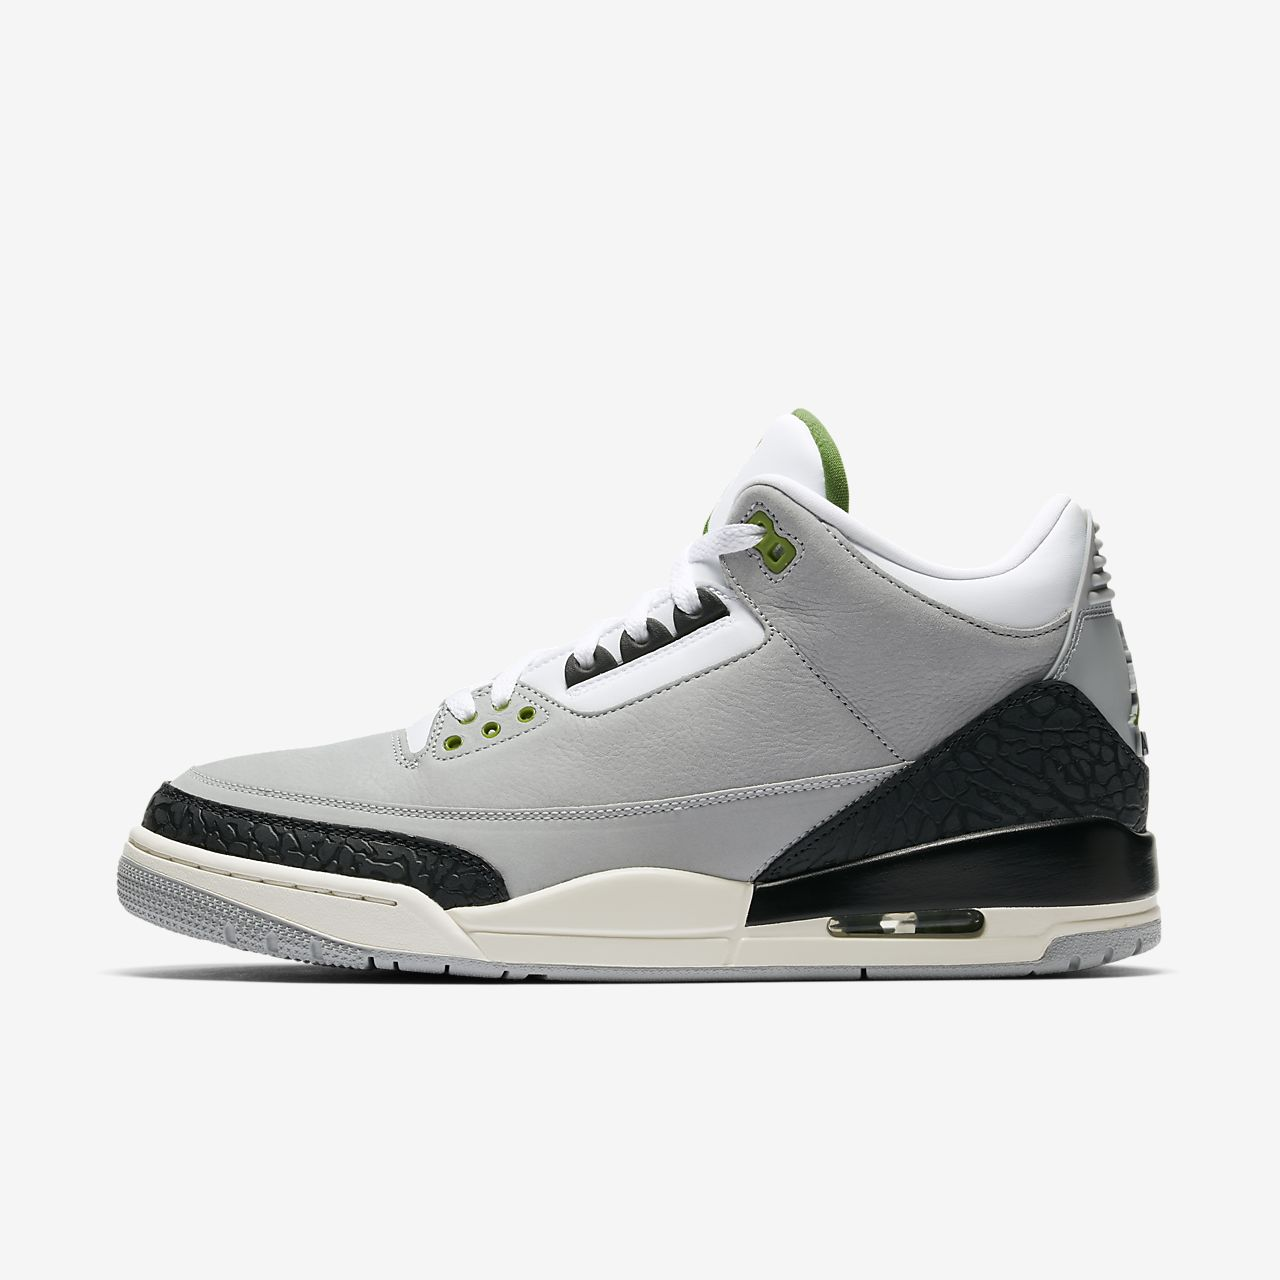 8e2209cf51076d Air Jordan 3 Retro Men s Shoe. Nike.com AU